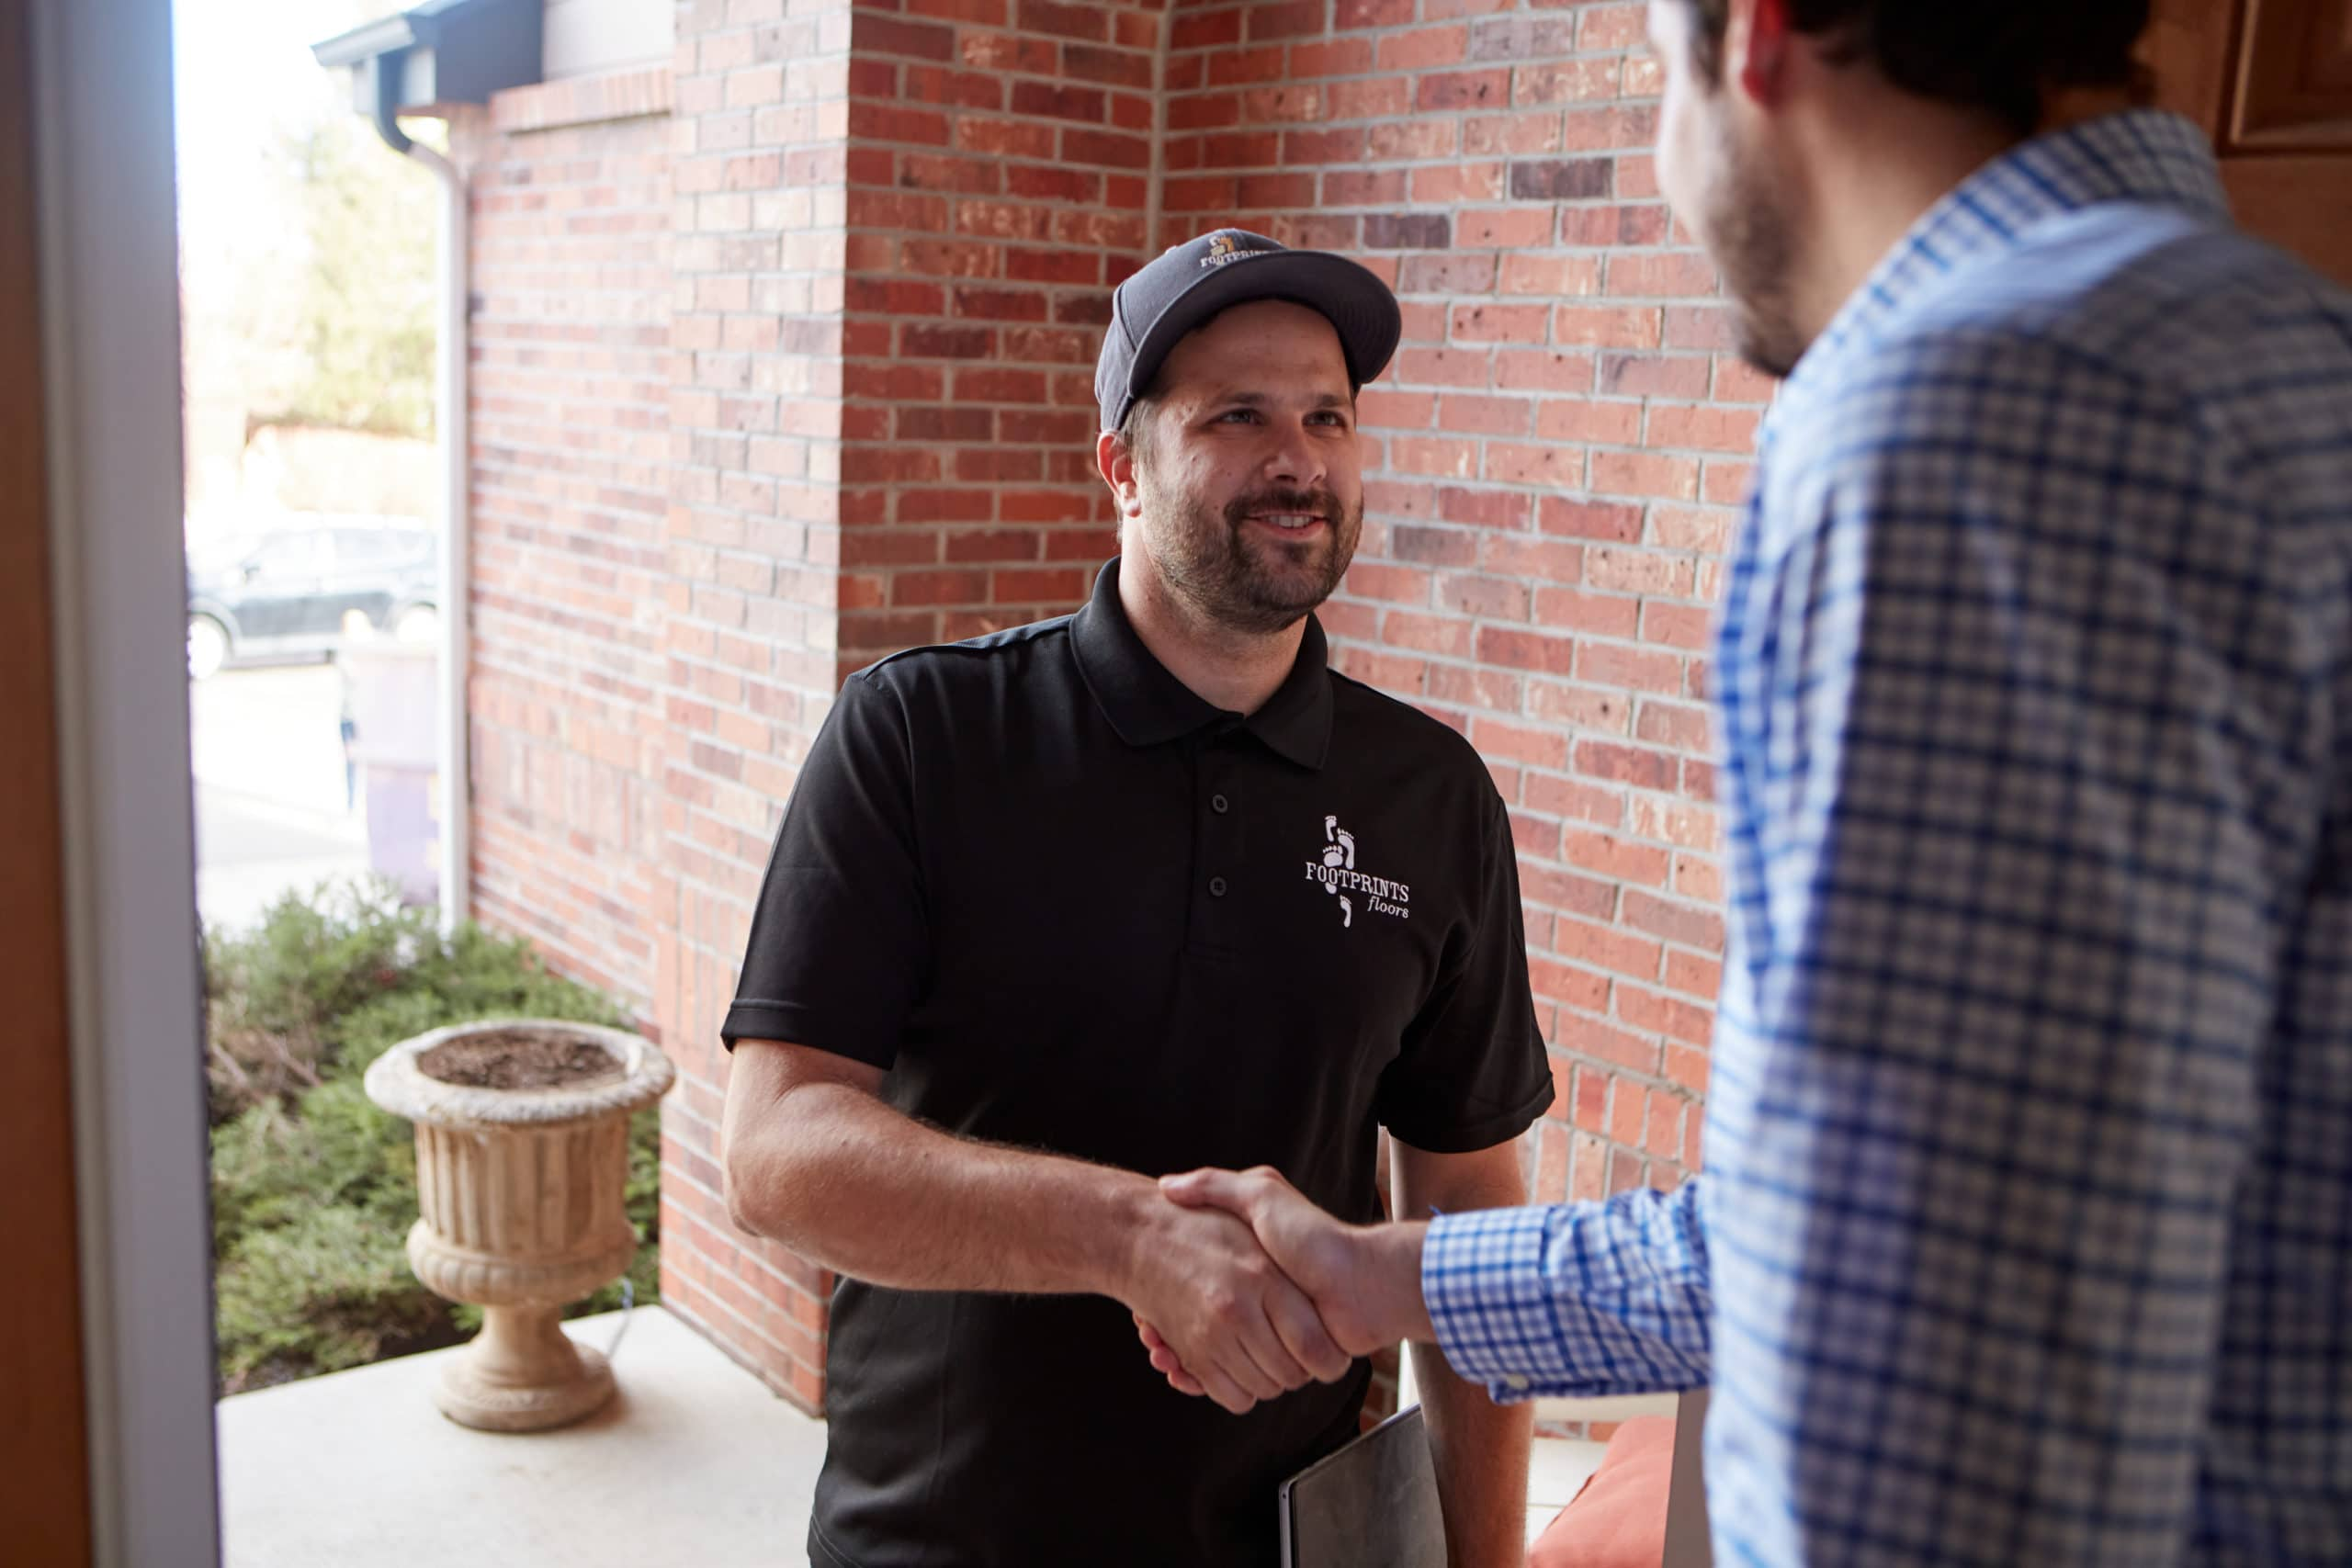 semi absentee franchise owner shaking customer hand